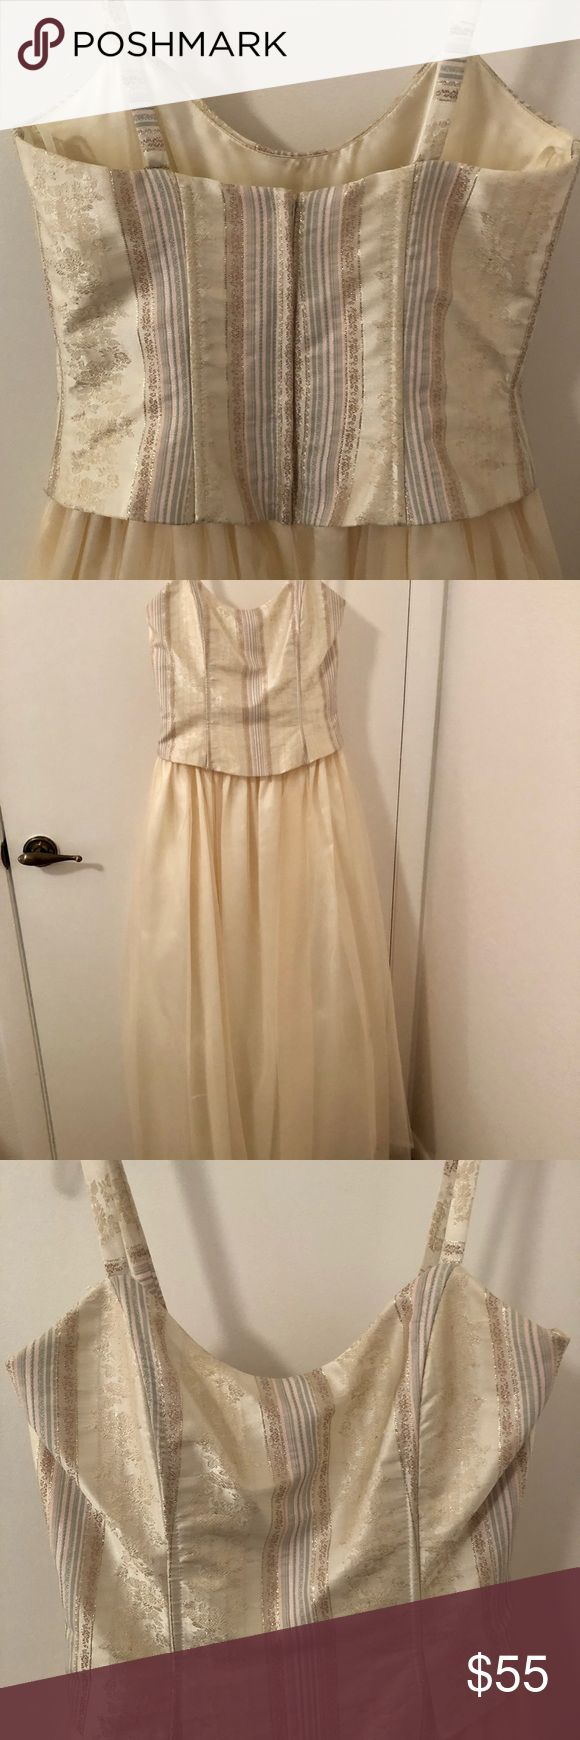 Ivory Jessica McClintock gown Beautiful ballroom gown or prom dress by Jessica McClintock. Size 5. One of a kind! Pink, light blue and gold stripes on the bodice. Worn once, good condition. Jessica McClintock Dresses Prom